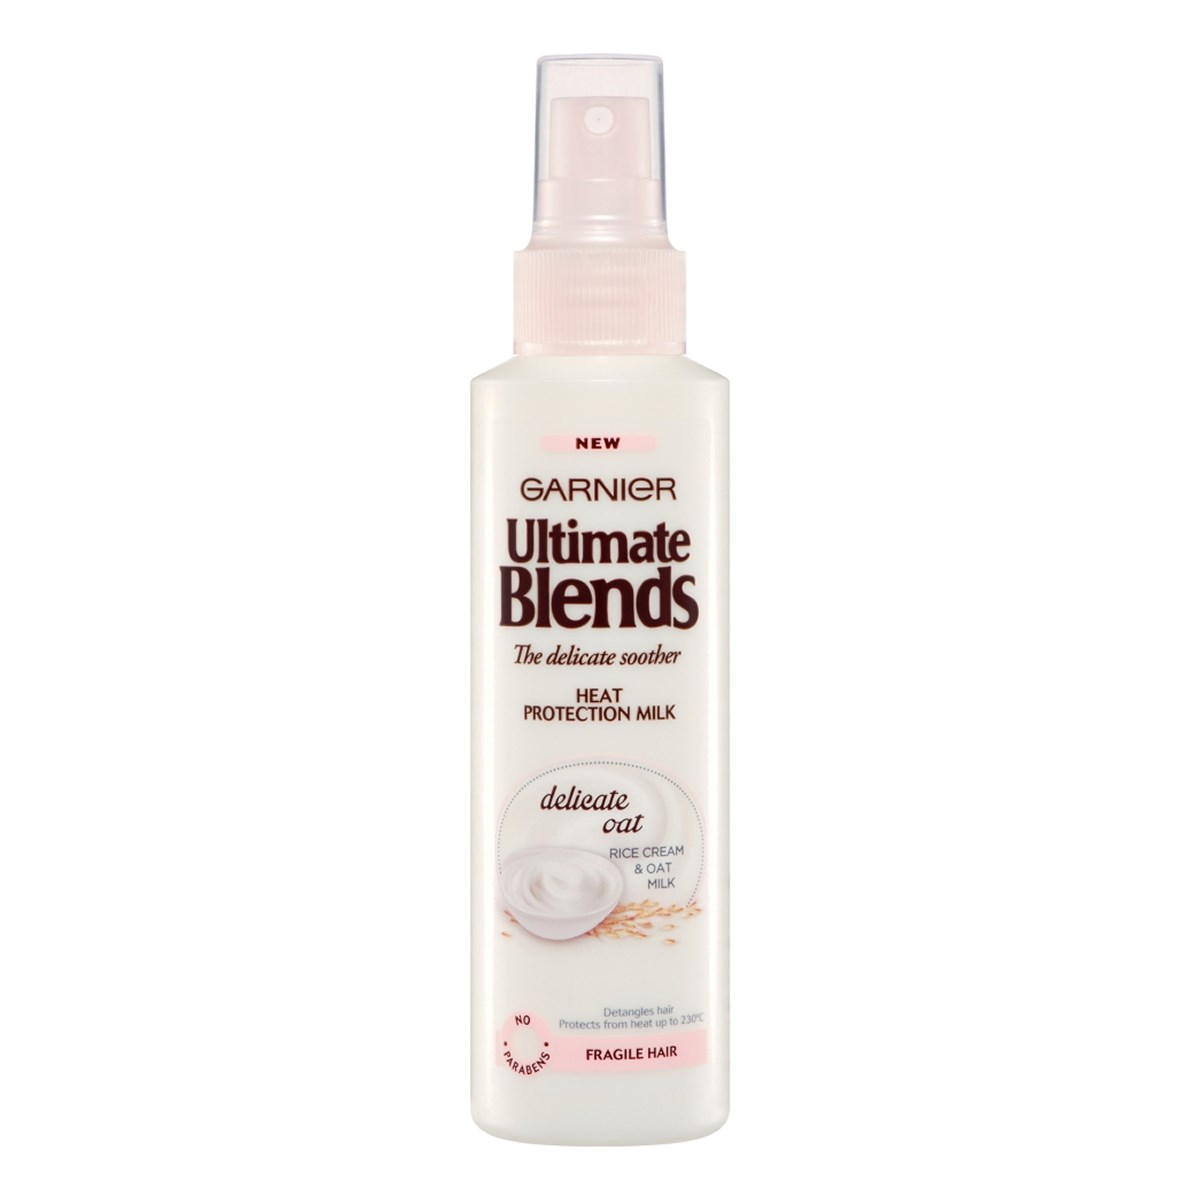 Garnier Ultimate Blends Delicate Soother Heat Protection Milk